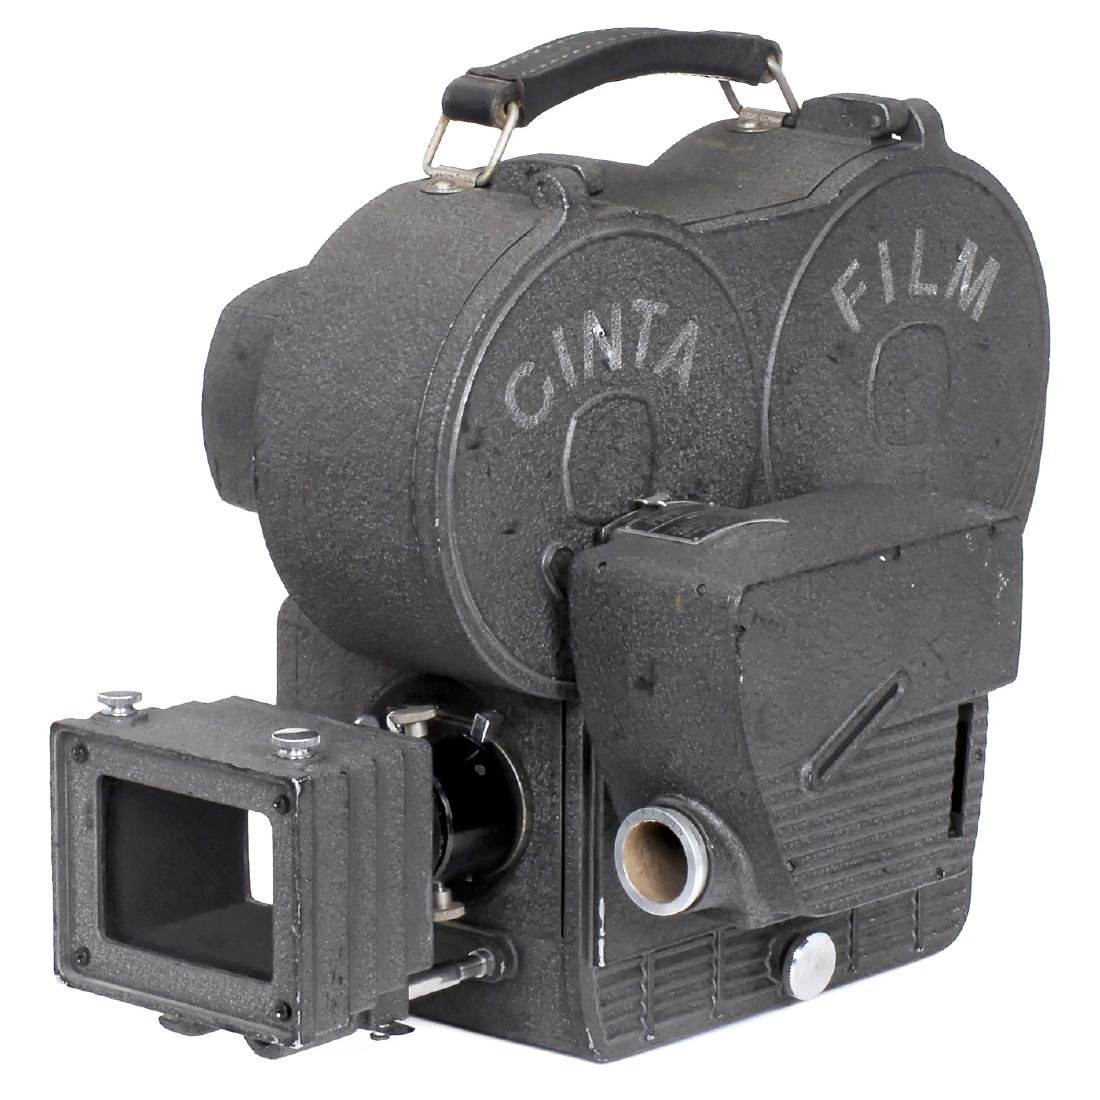 Auricon CM-71 16mm Movie Camera, c. 1955